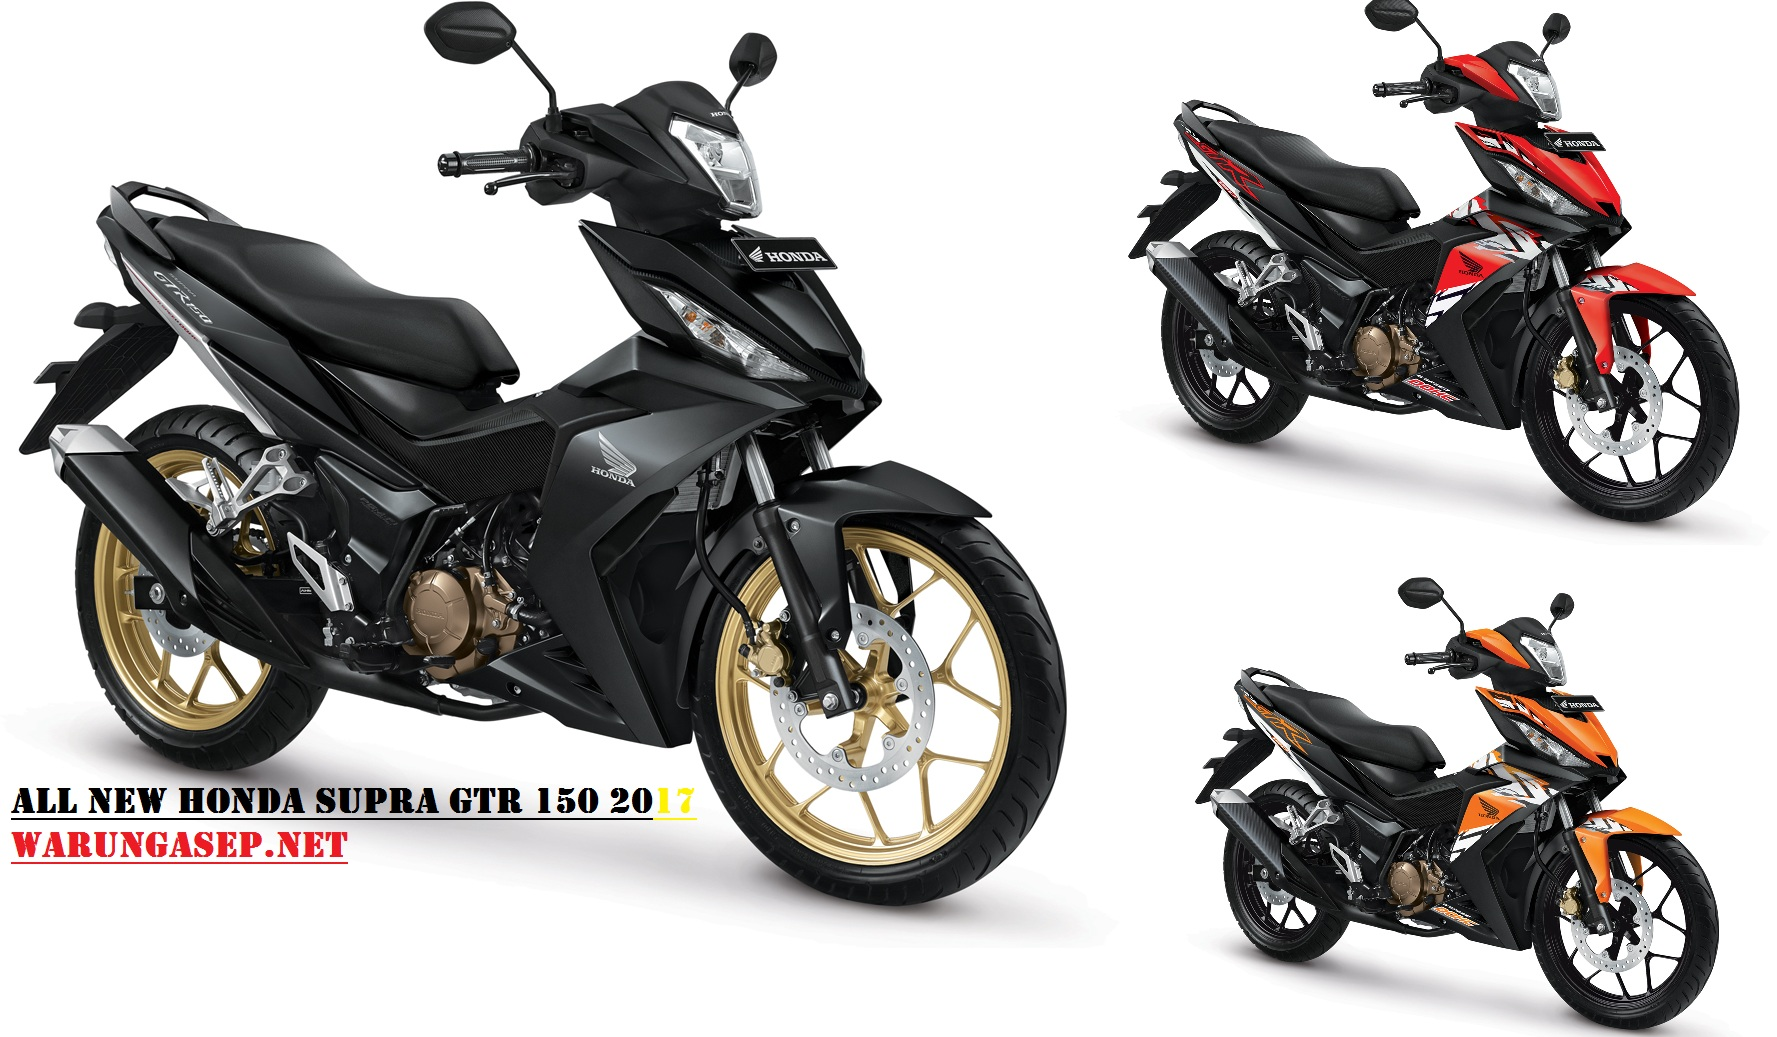 3 Warna Baru All New Honda Supra GTR150cc 2017 Velg Warna Gold